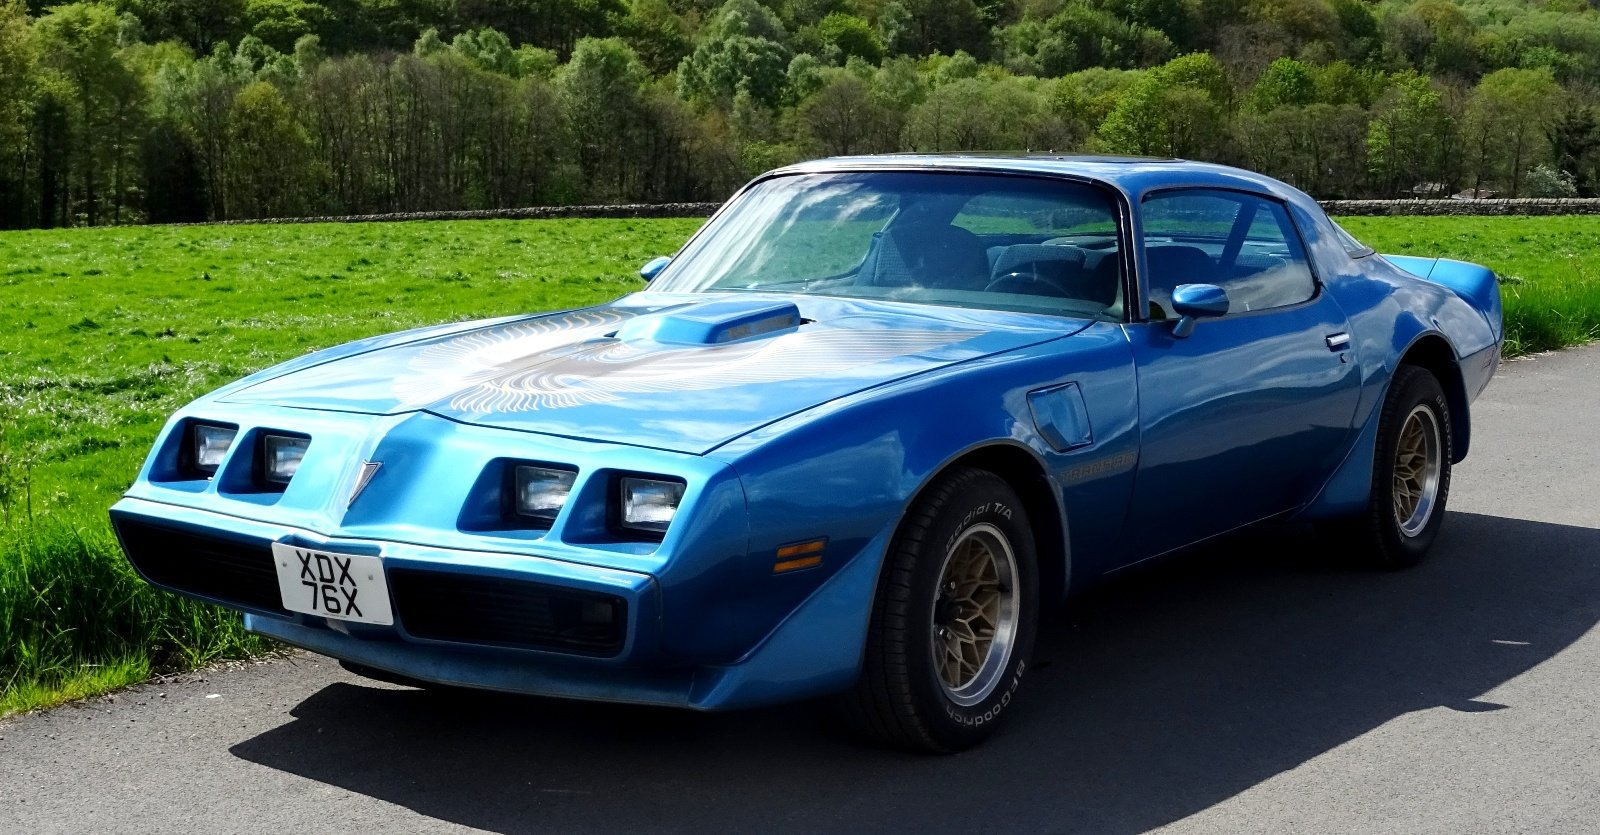 1980 PONTIAC FIREBIRD TRANS AM 6.6 LITRE V8 AMERICAN MUSCLE CAR For Sale (picture 2 of 6)